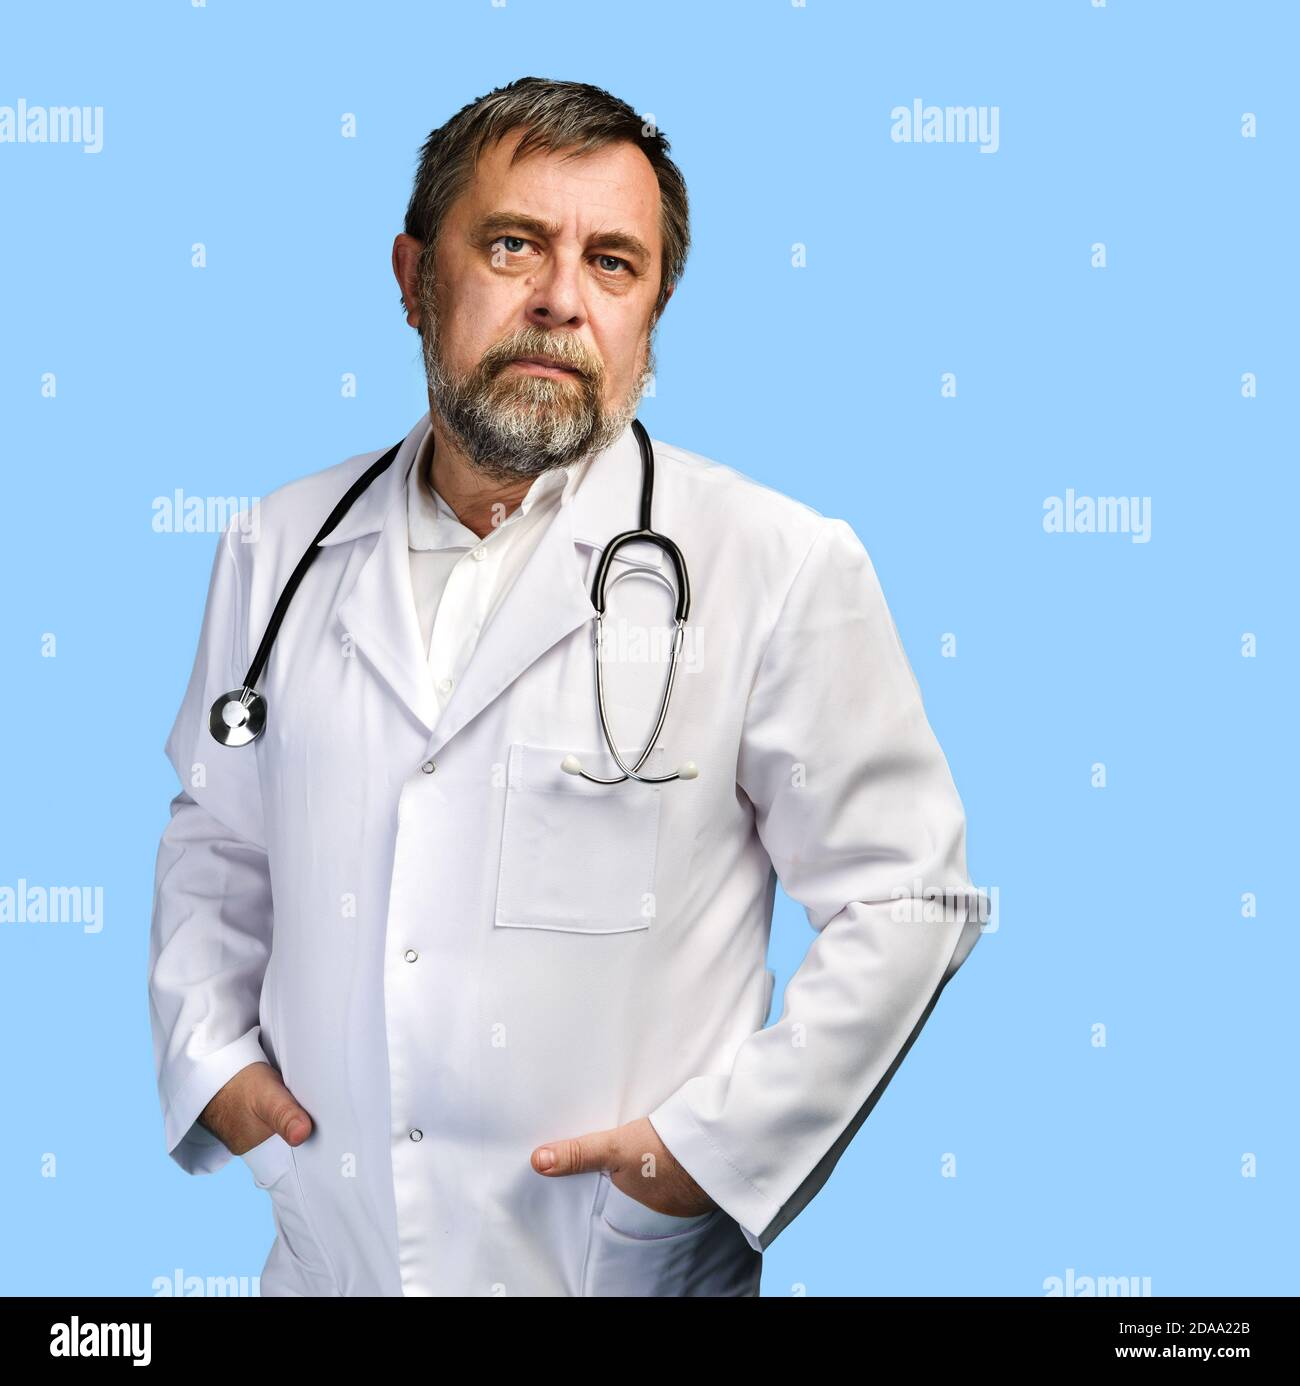 Portrait of handsome tired medical doctor with stethoscope in white coat isolated on blue background with copyspace Stock Photo